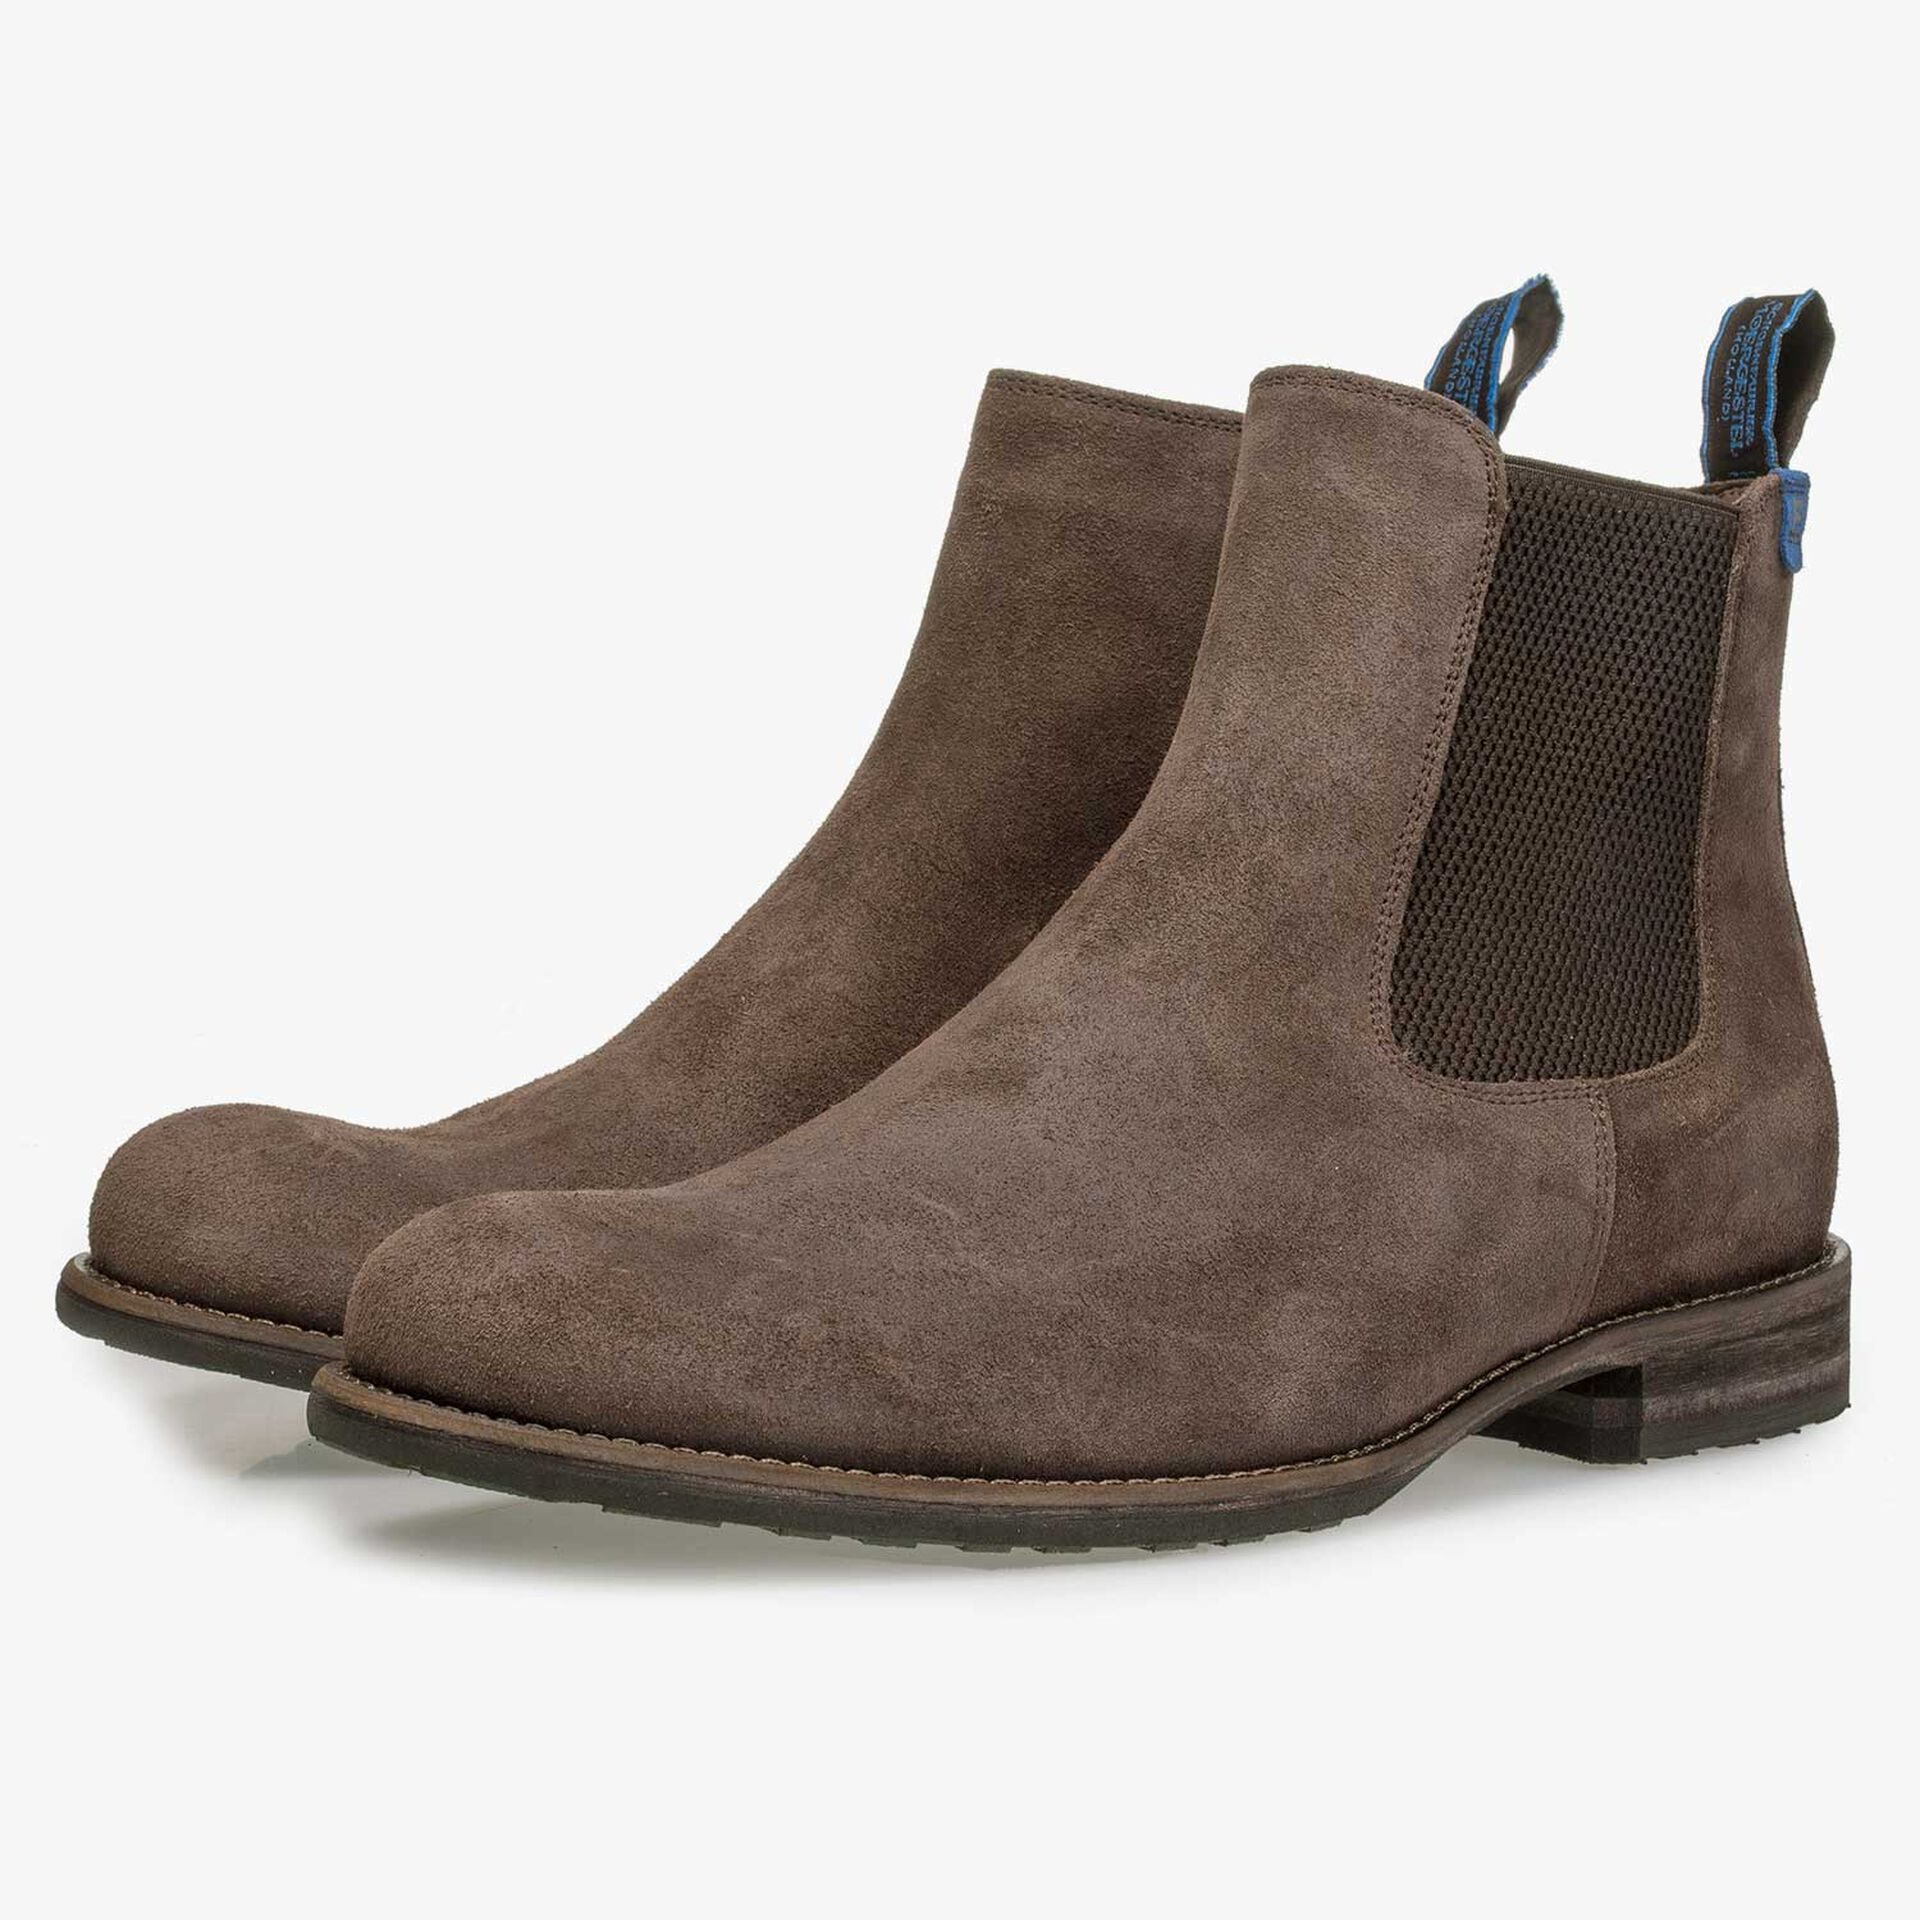 Lined brown suede leather Chelsea boot